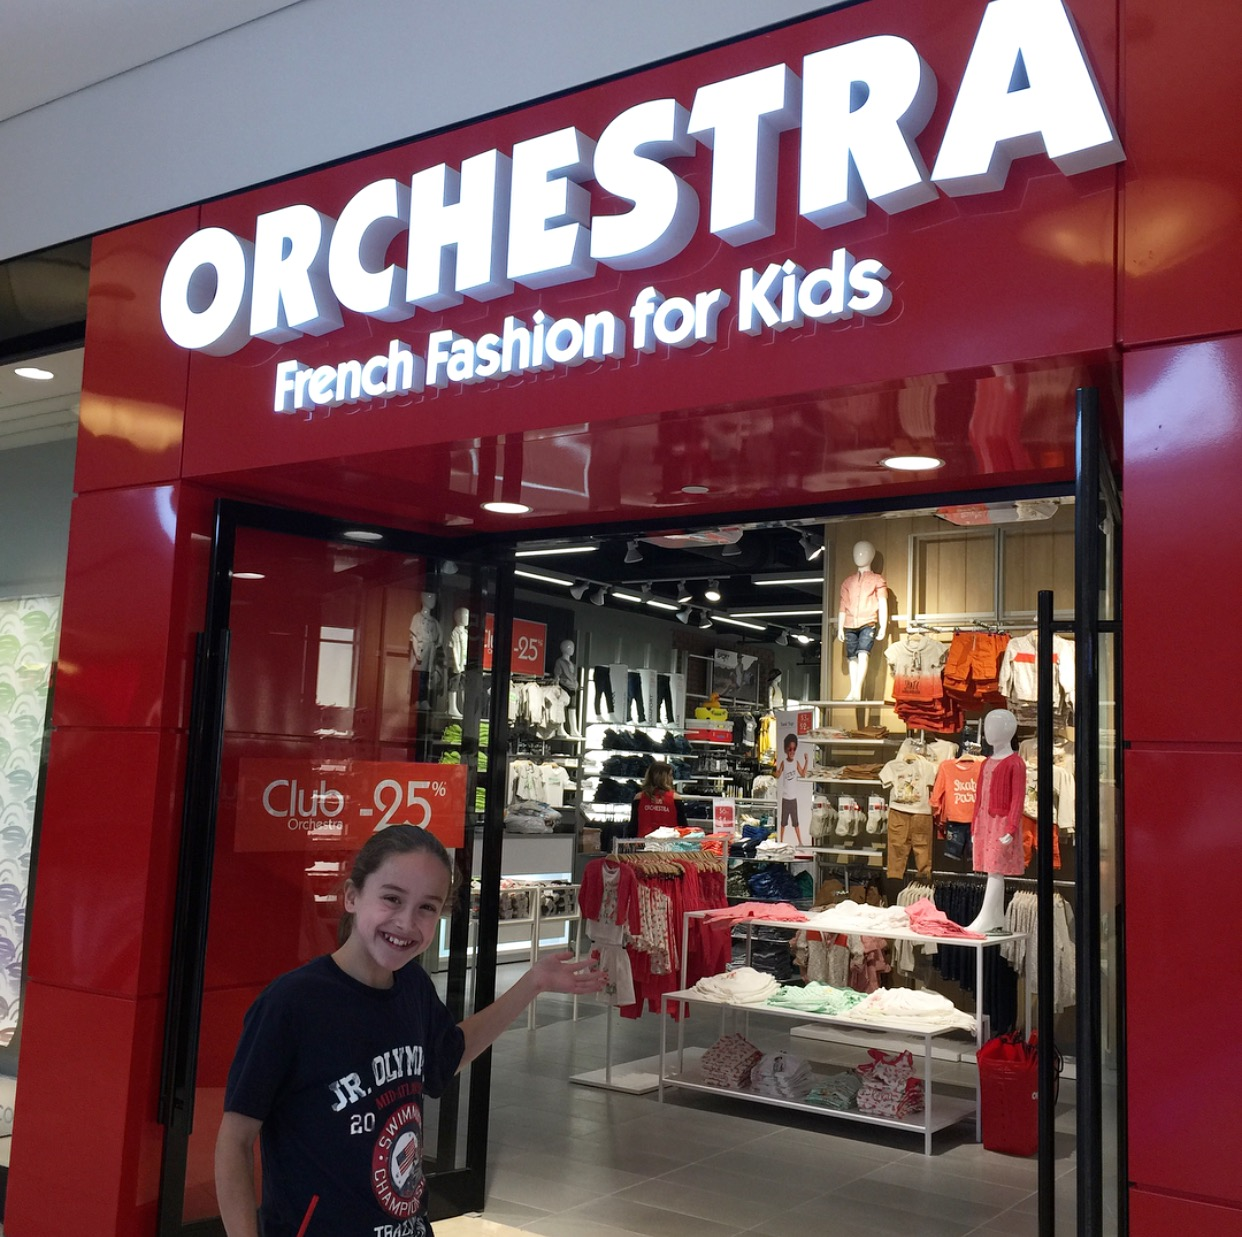 Orchestra Brings Stylish Fashion for Kids to King of Prussia Mall $50 Gift Card Giveaway